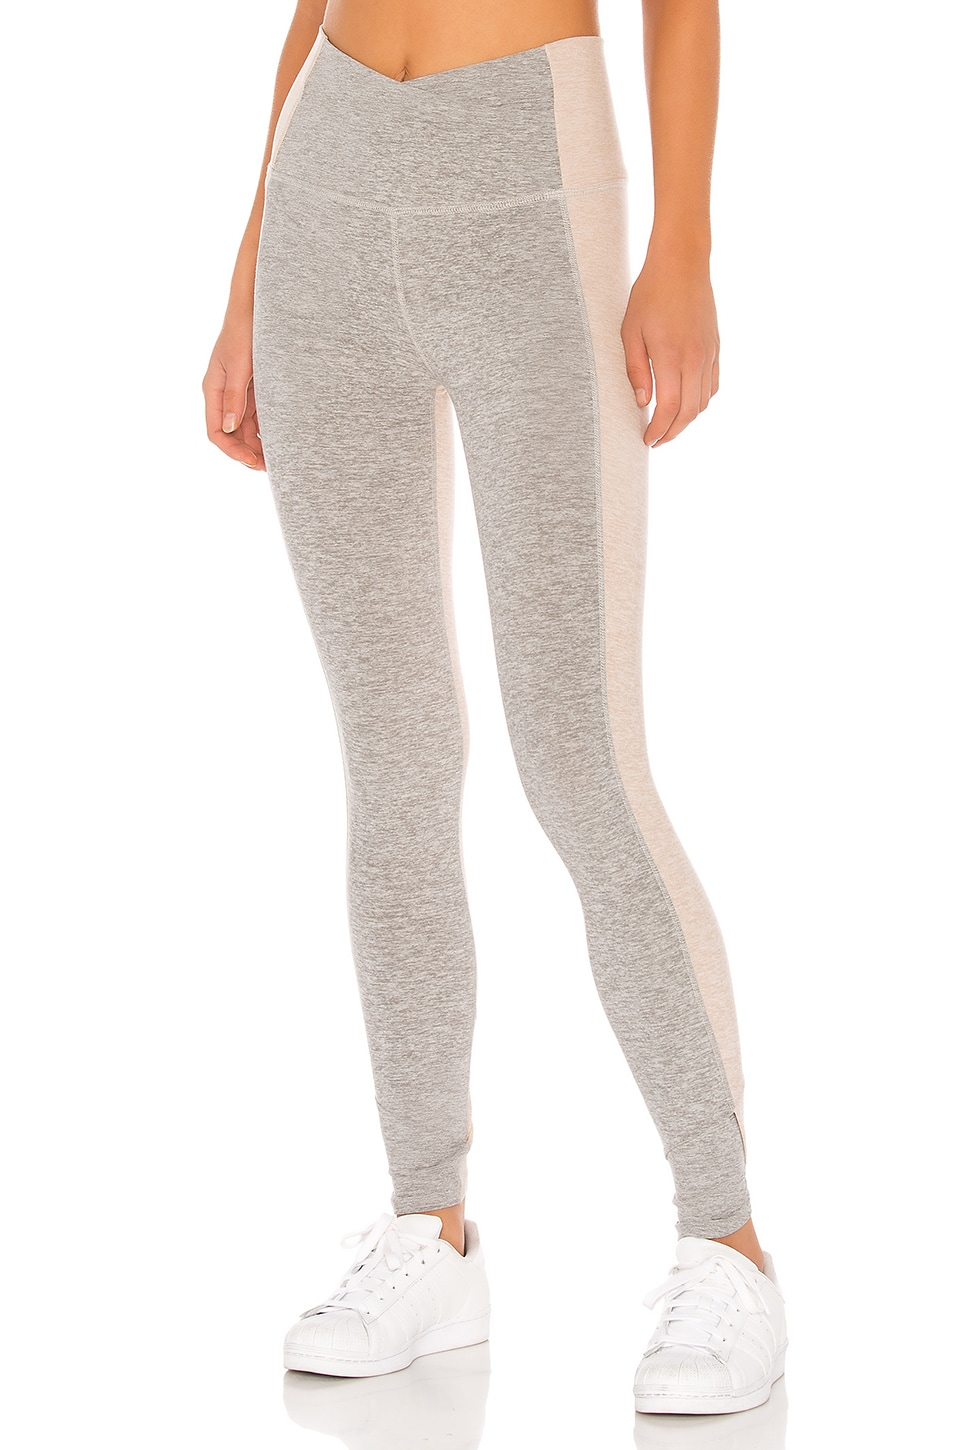 Beyond Yoga Spacedye Home Run High Waisted Midi Legging in Silver Mist